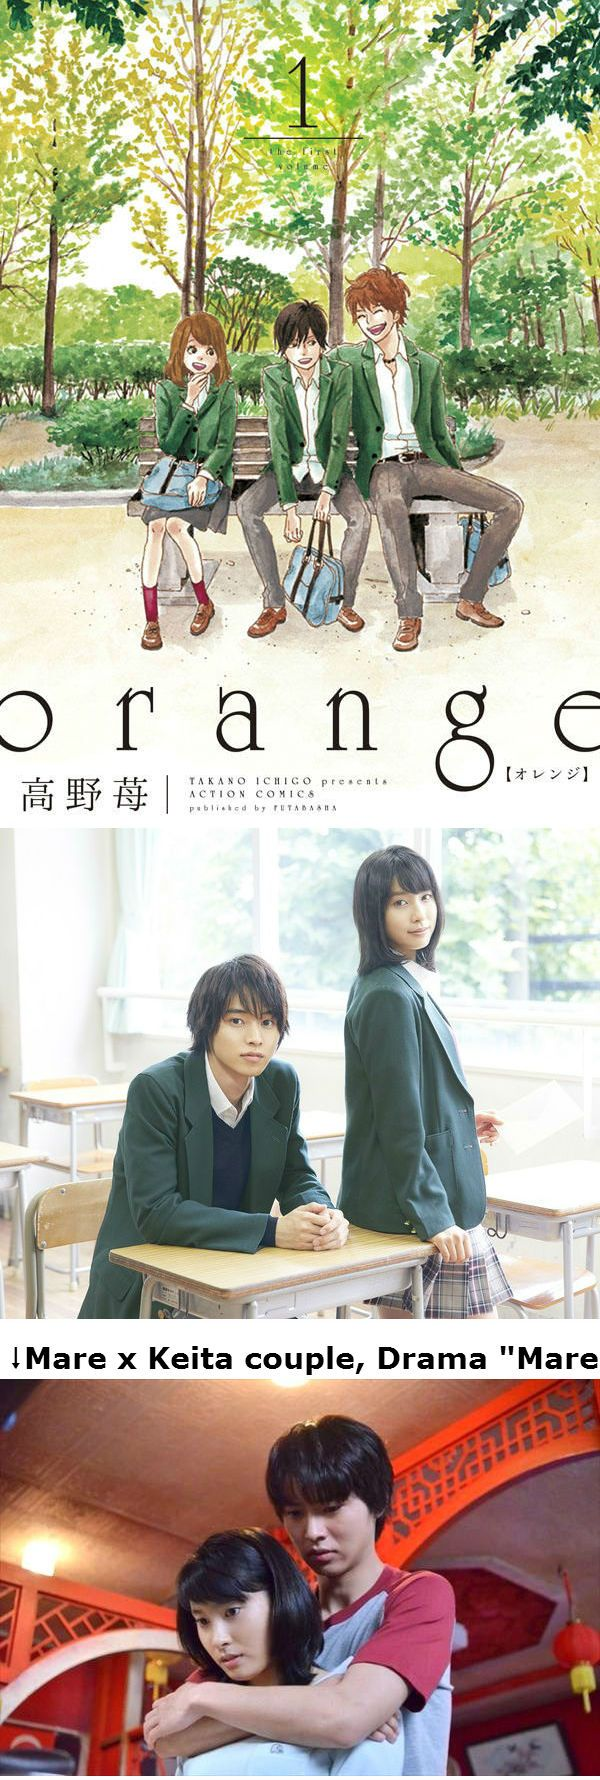 Kento Yamazaki x Tao Tsuchiya'll act together again in J live-action movie of…